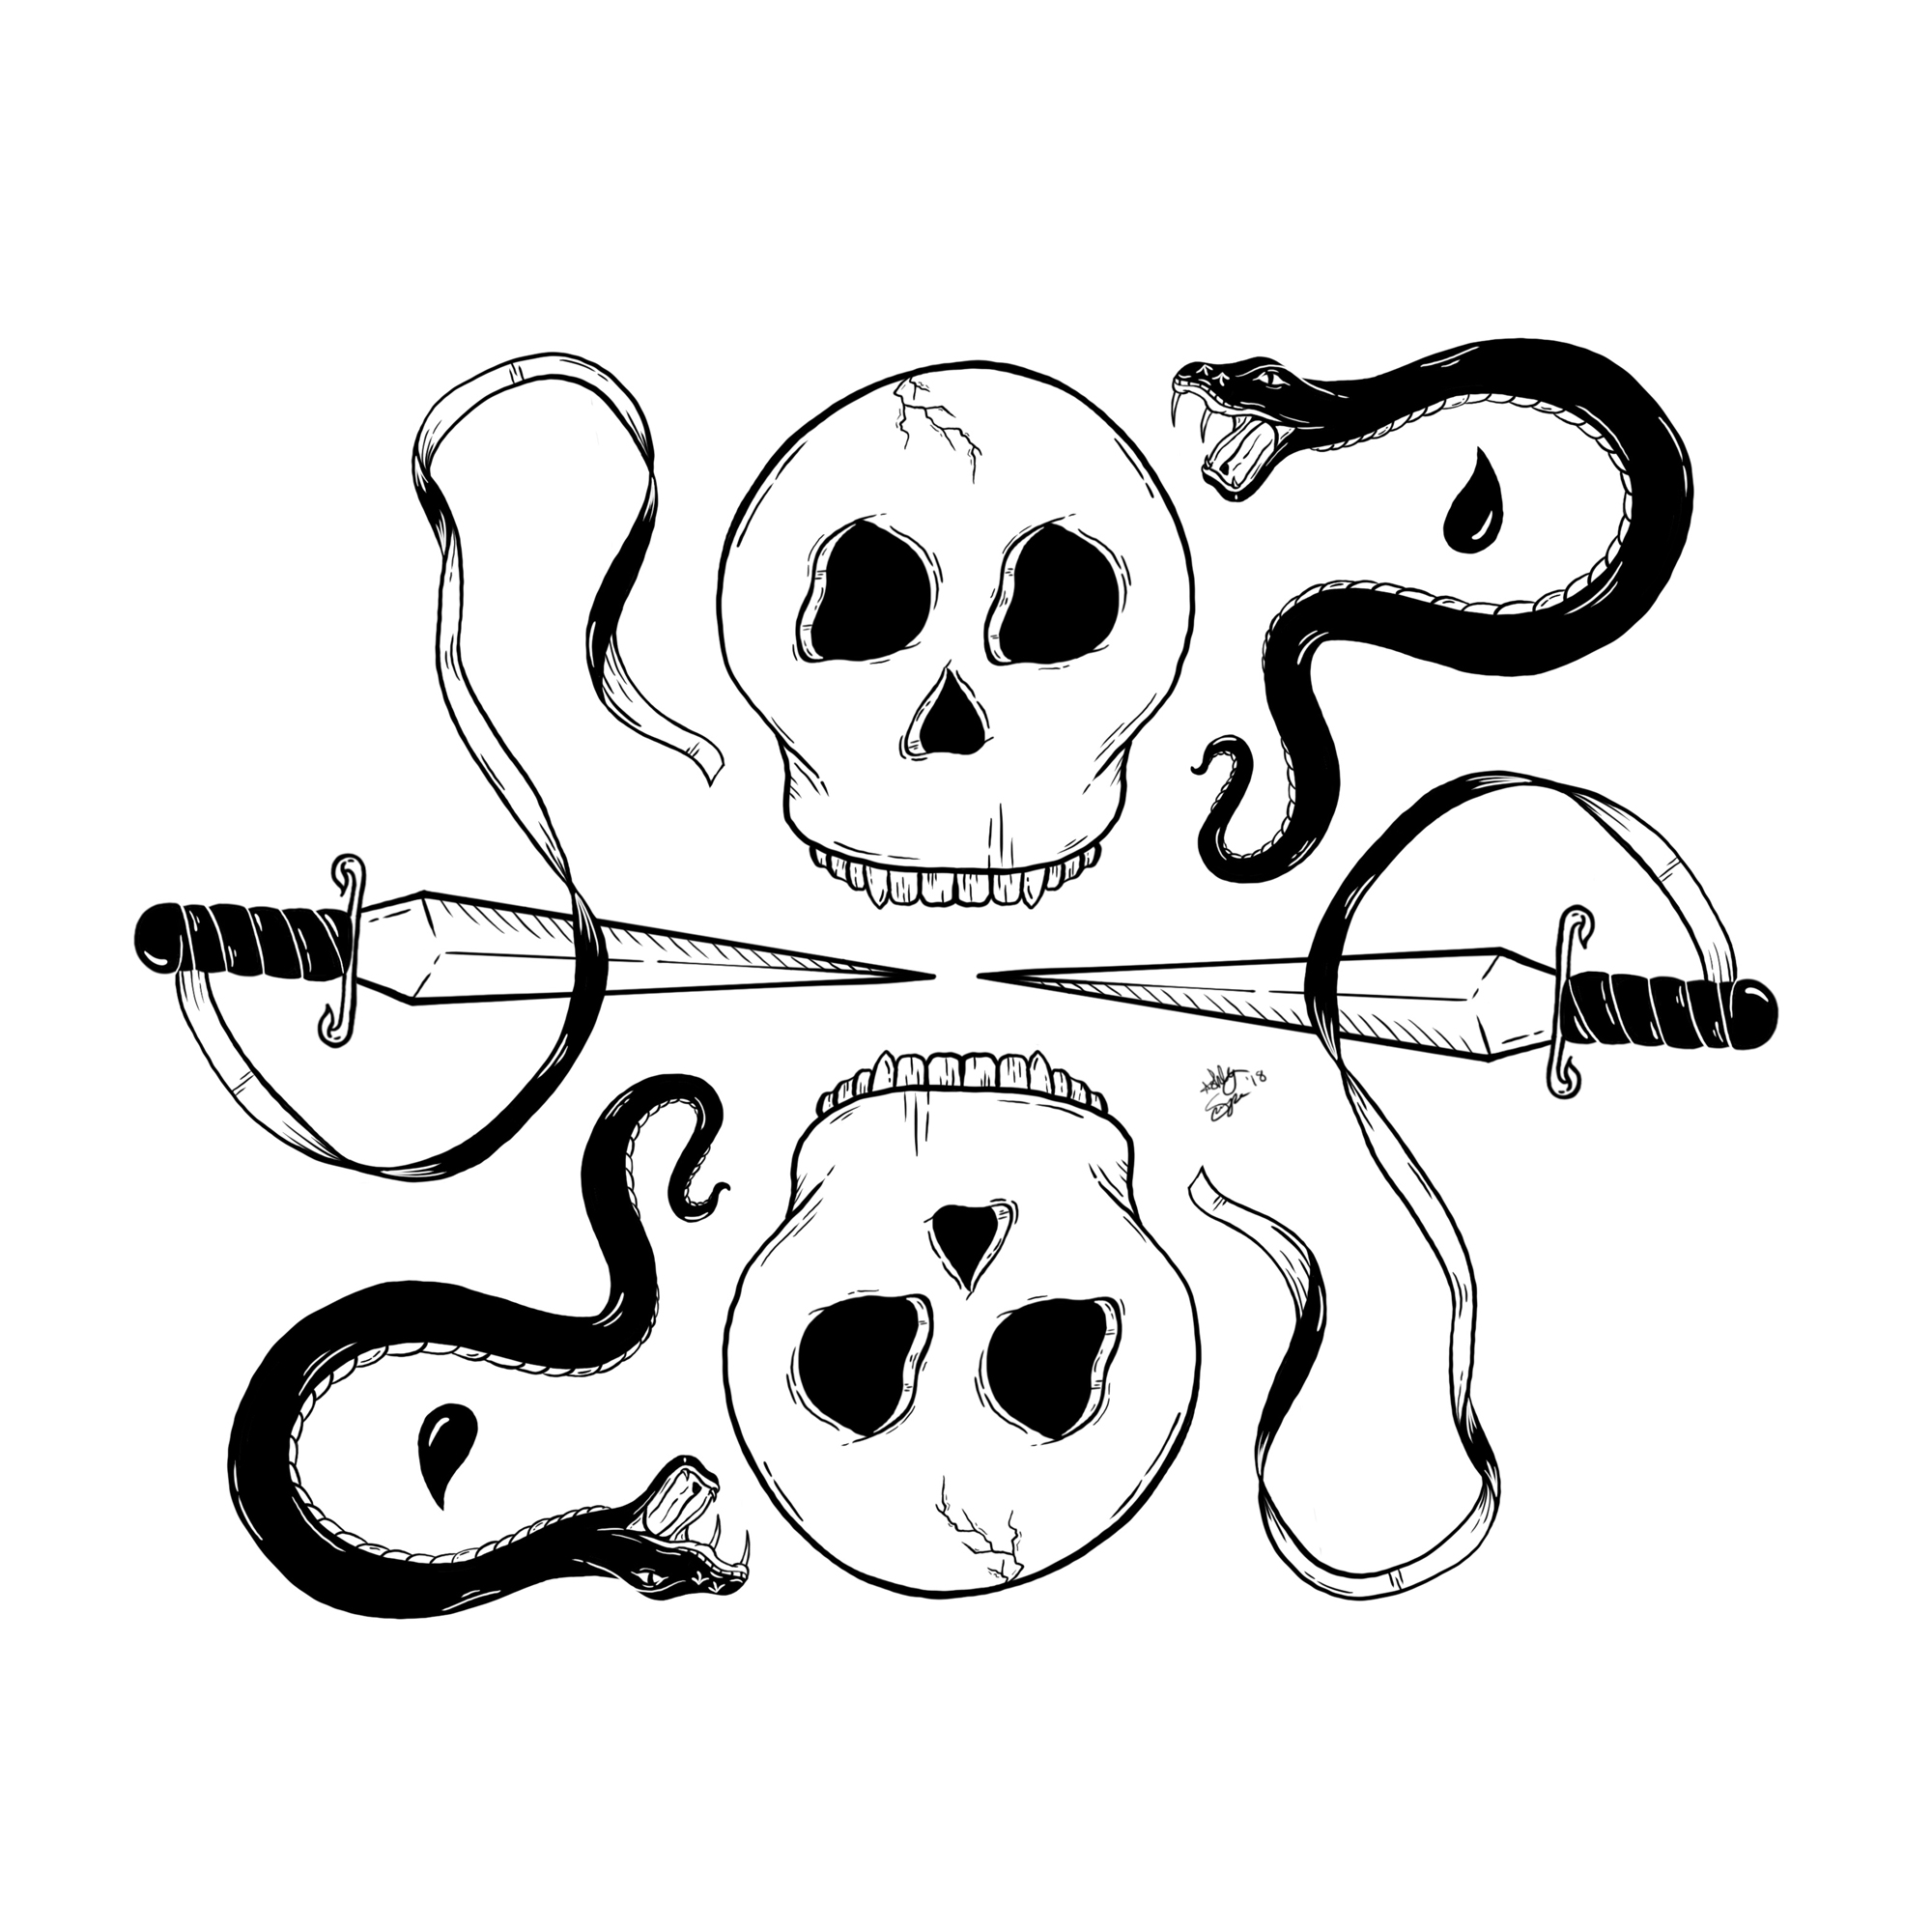 skull-and-dagger-website.jpg